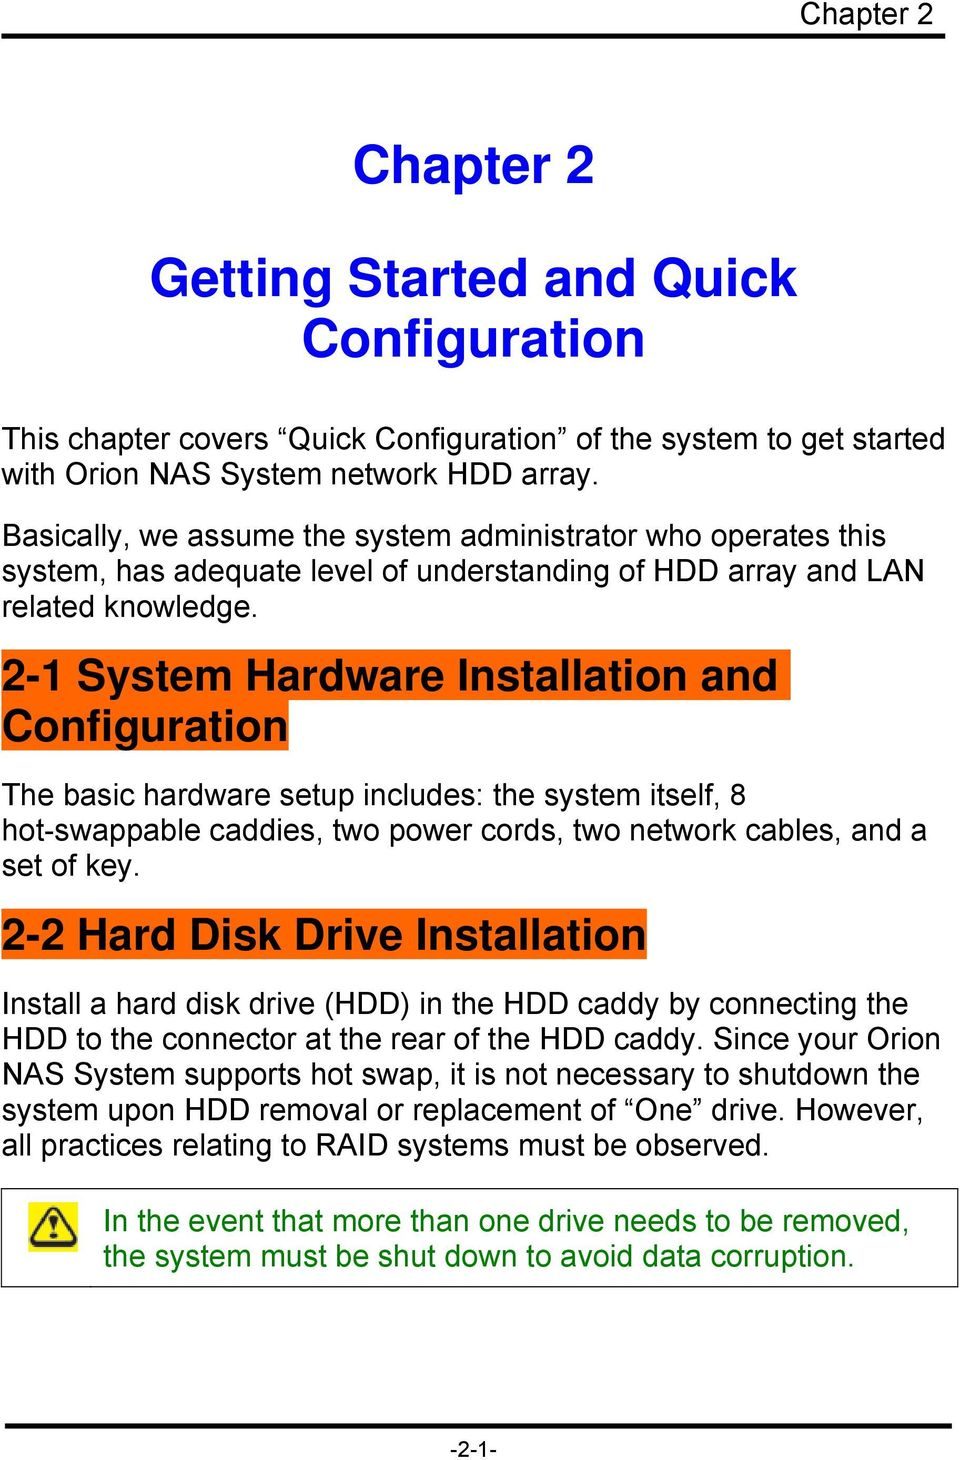 2-1 System Hardware Installation and Configuration The basic hardware setup includes: the system itself, 8 hot-swappable caddies, two power cords, two network cables, and a set of key.